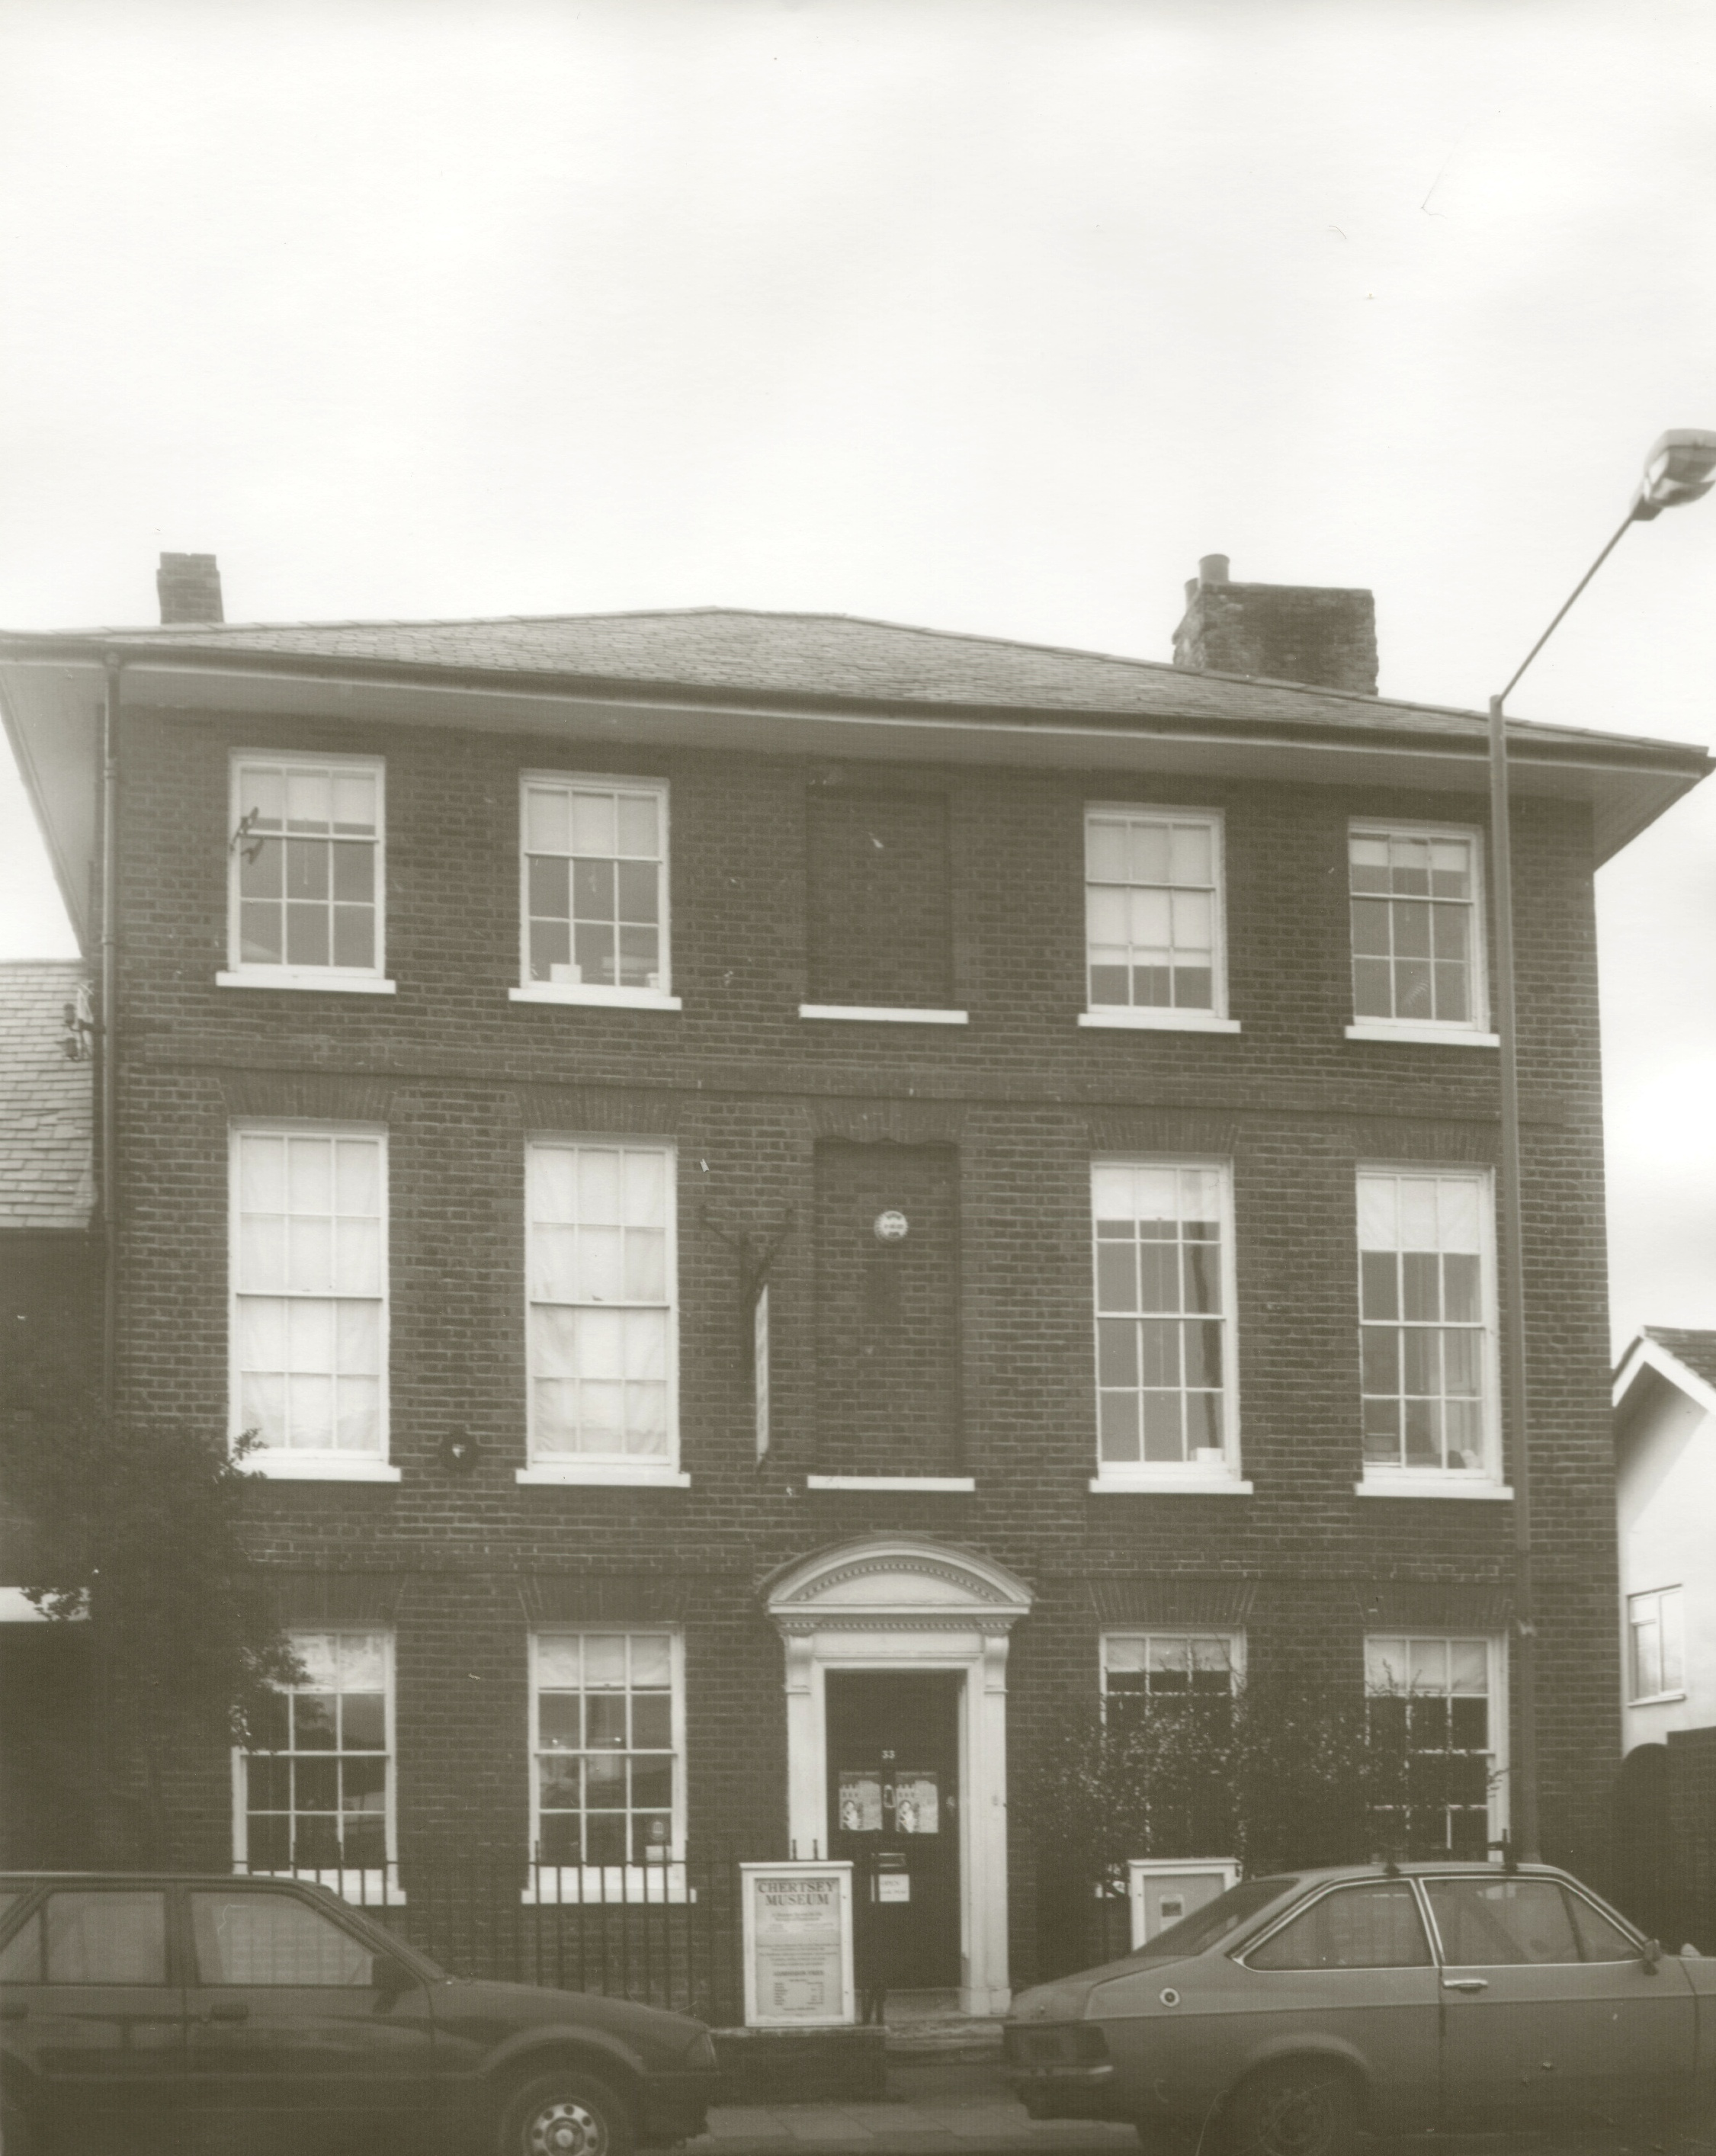 The Cedars, Windsor Street, Chertsey, 1993